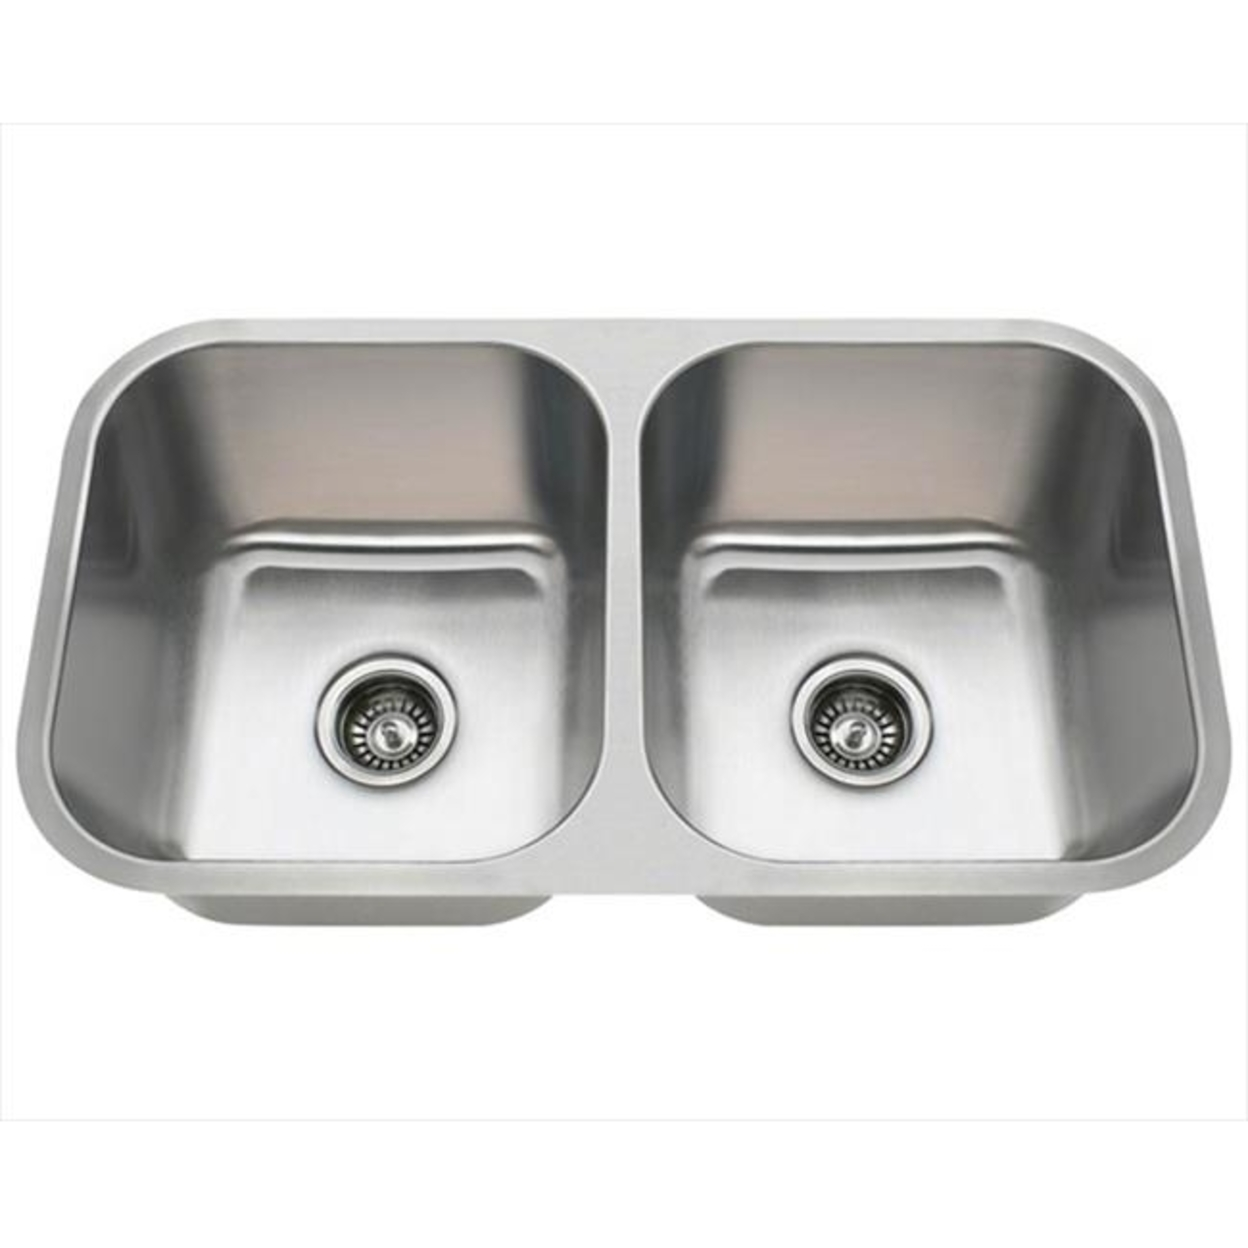 MR Direct 3218A Undermount Stainless Steel Kitchen Sink 596e3e4a2a00e4622a0caaa4